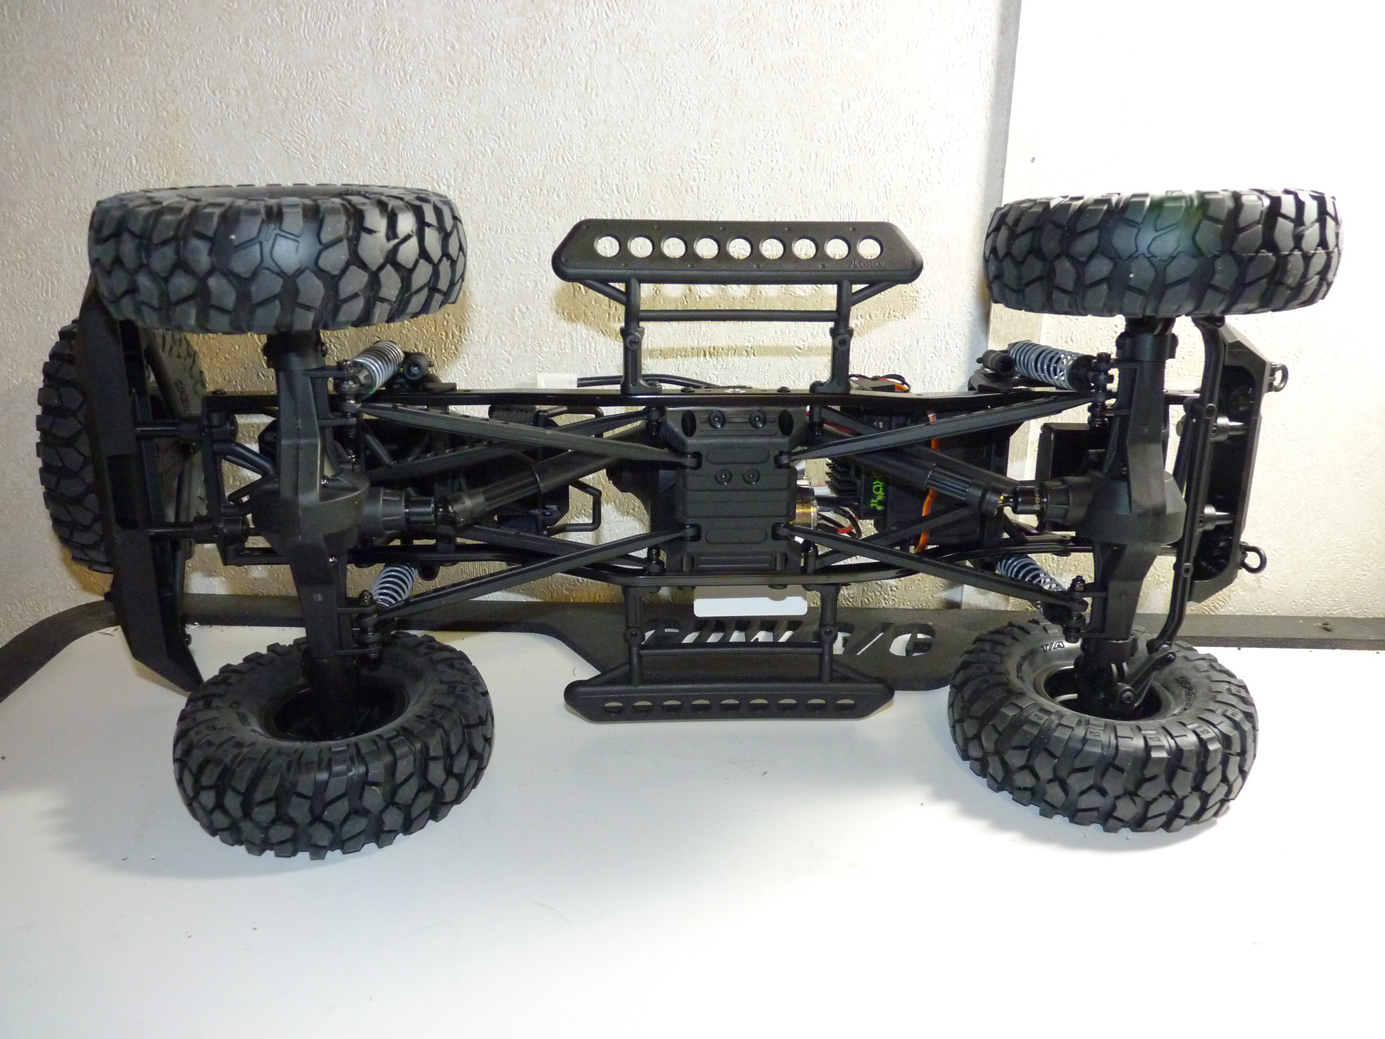 Unboxed Axial Scx10 2012 Jeep Wrangler Unlimited C R